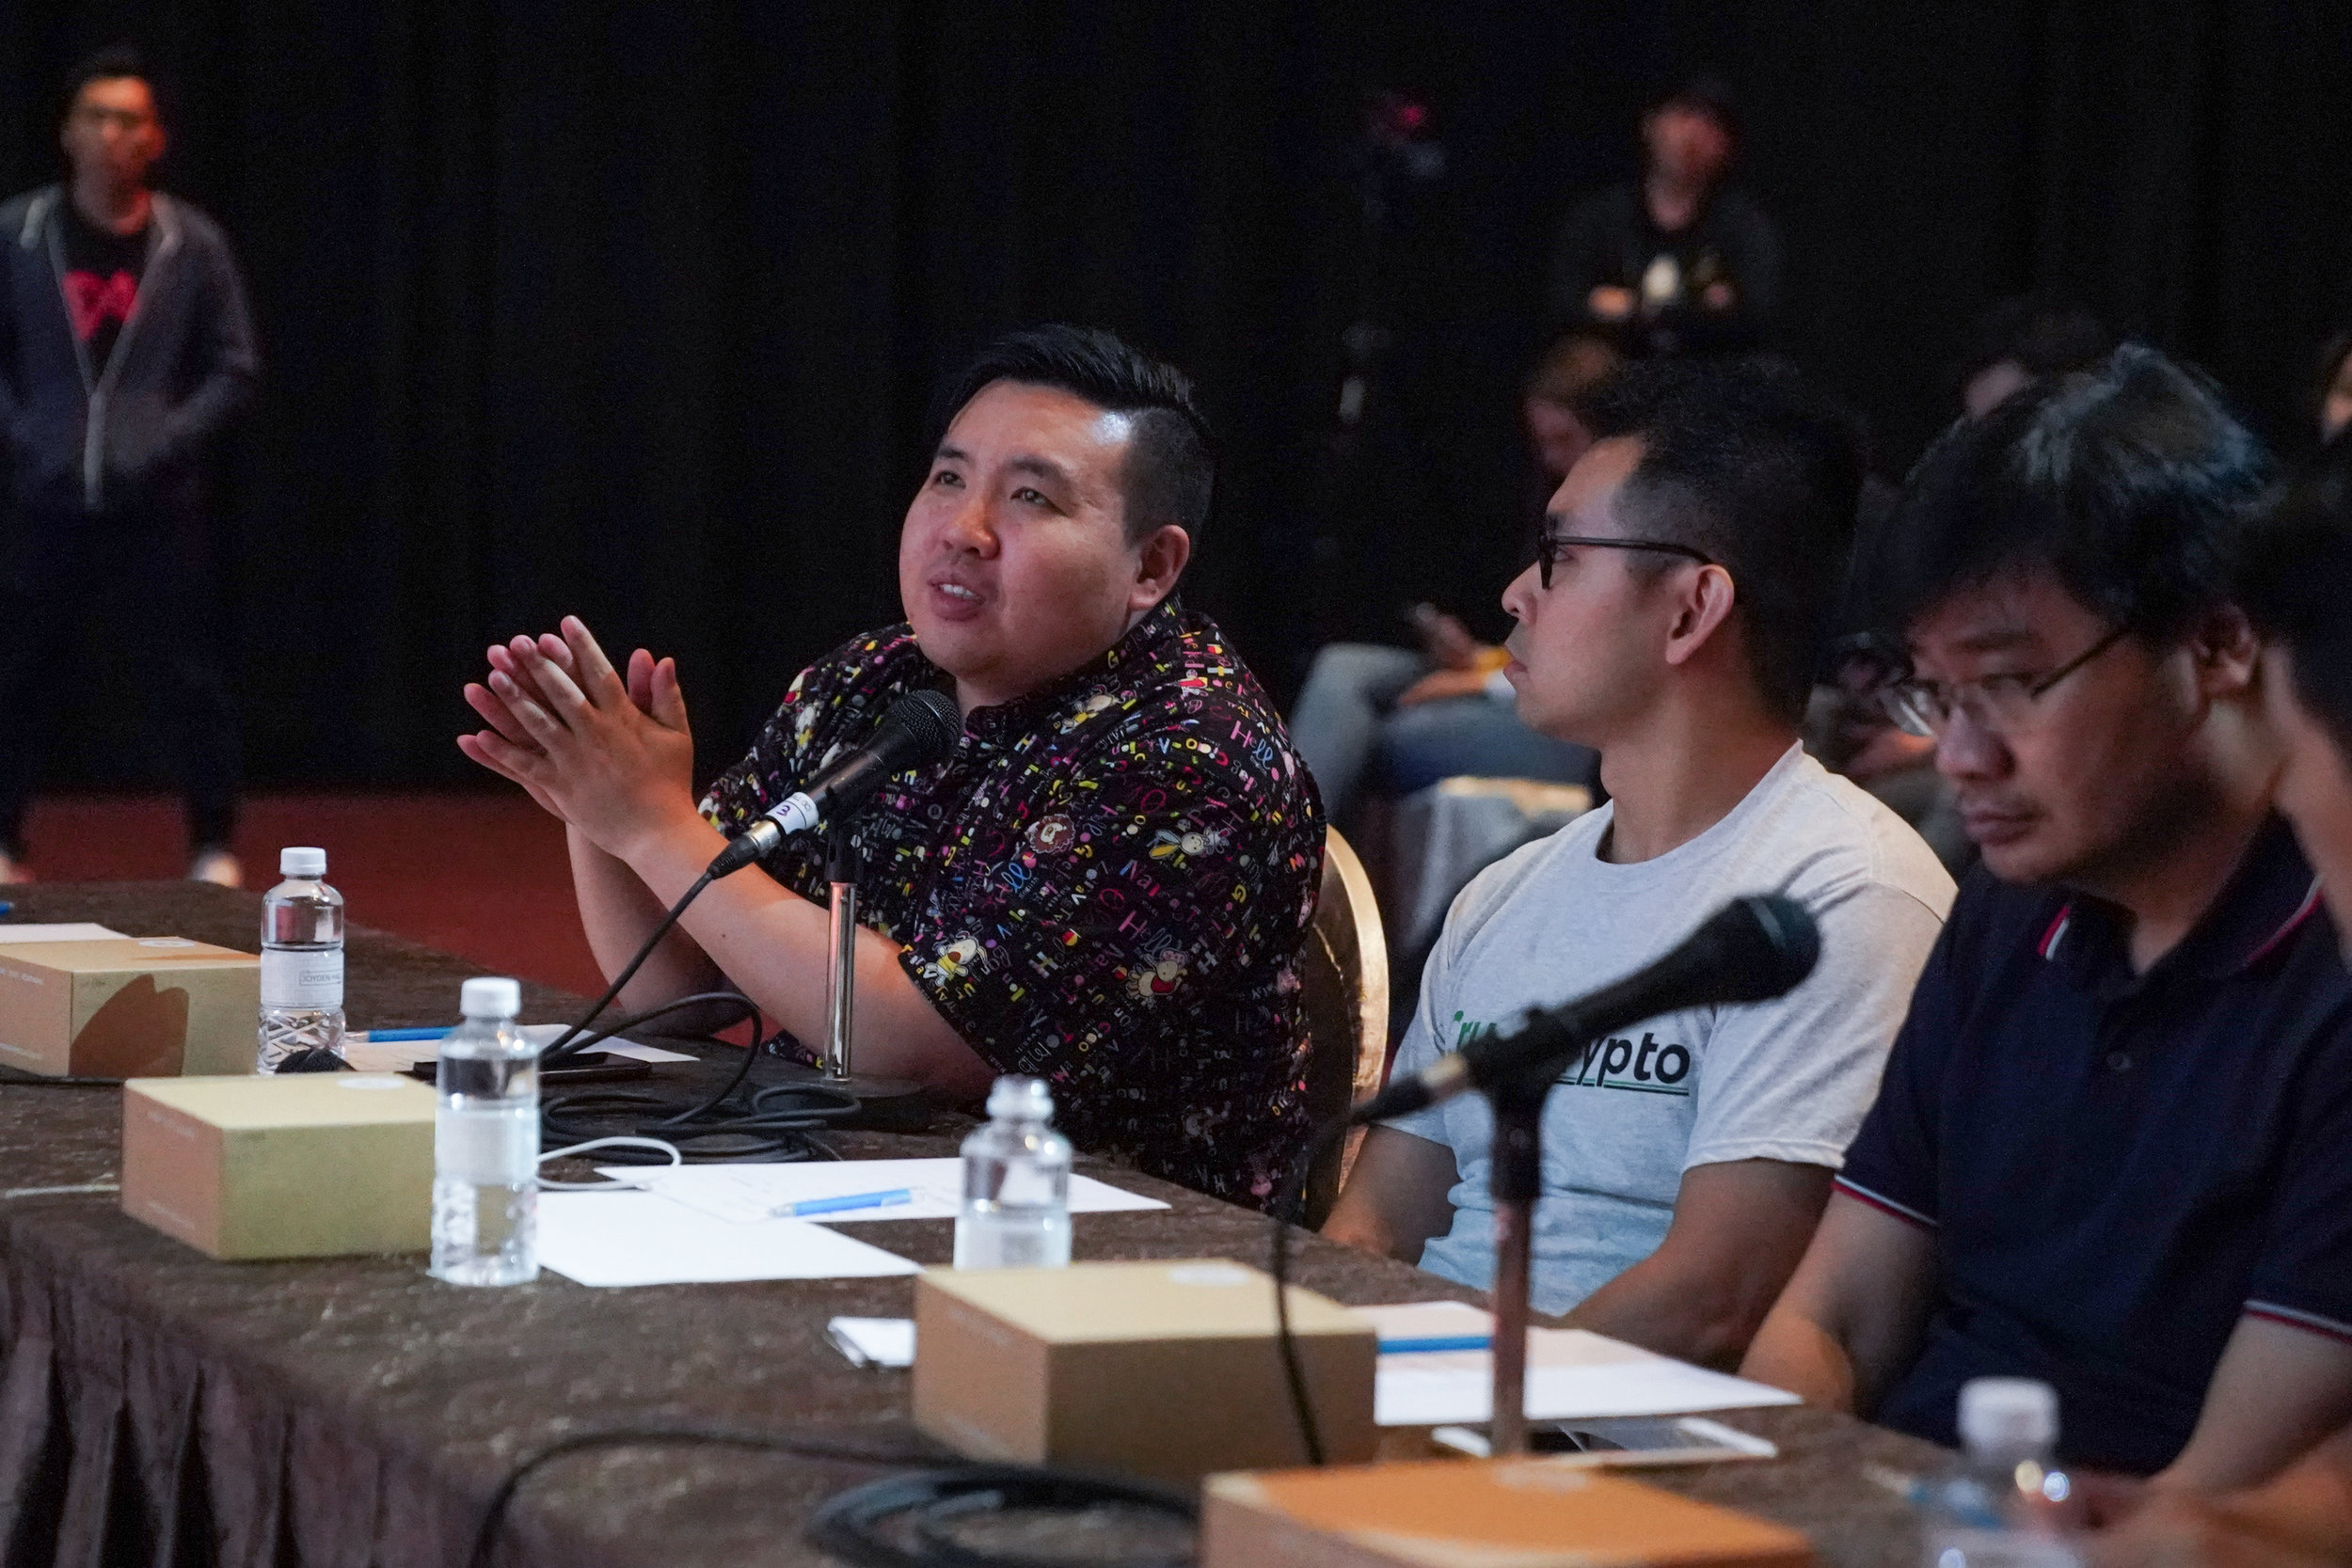 Panel of judges at Pitch Night 2018. From left: Soso from Block Crafters Capital, Victor Lai from CrushCrypto and Long Vuong from Tomochain.